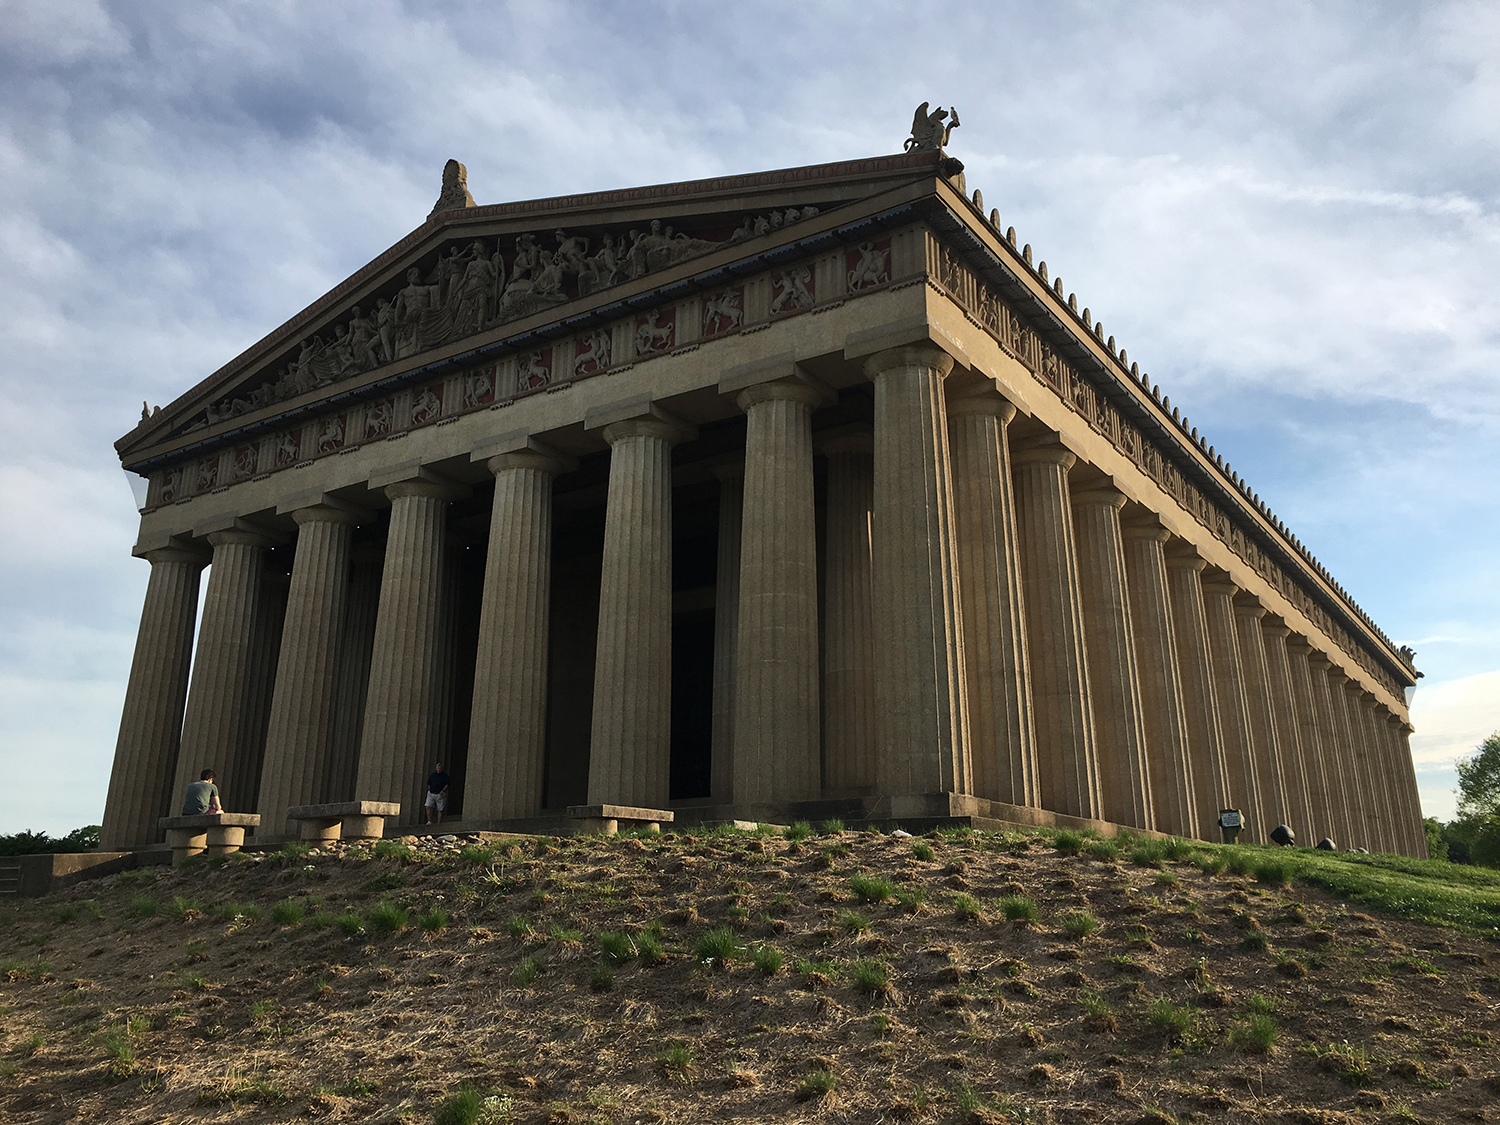 The Parthenon, yep, an exact replica, in Centennial Park in Nashville. And my work is inside!